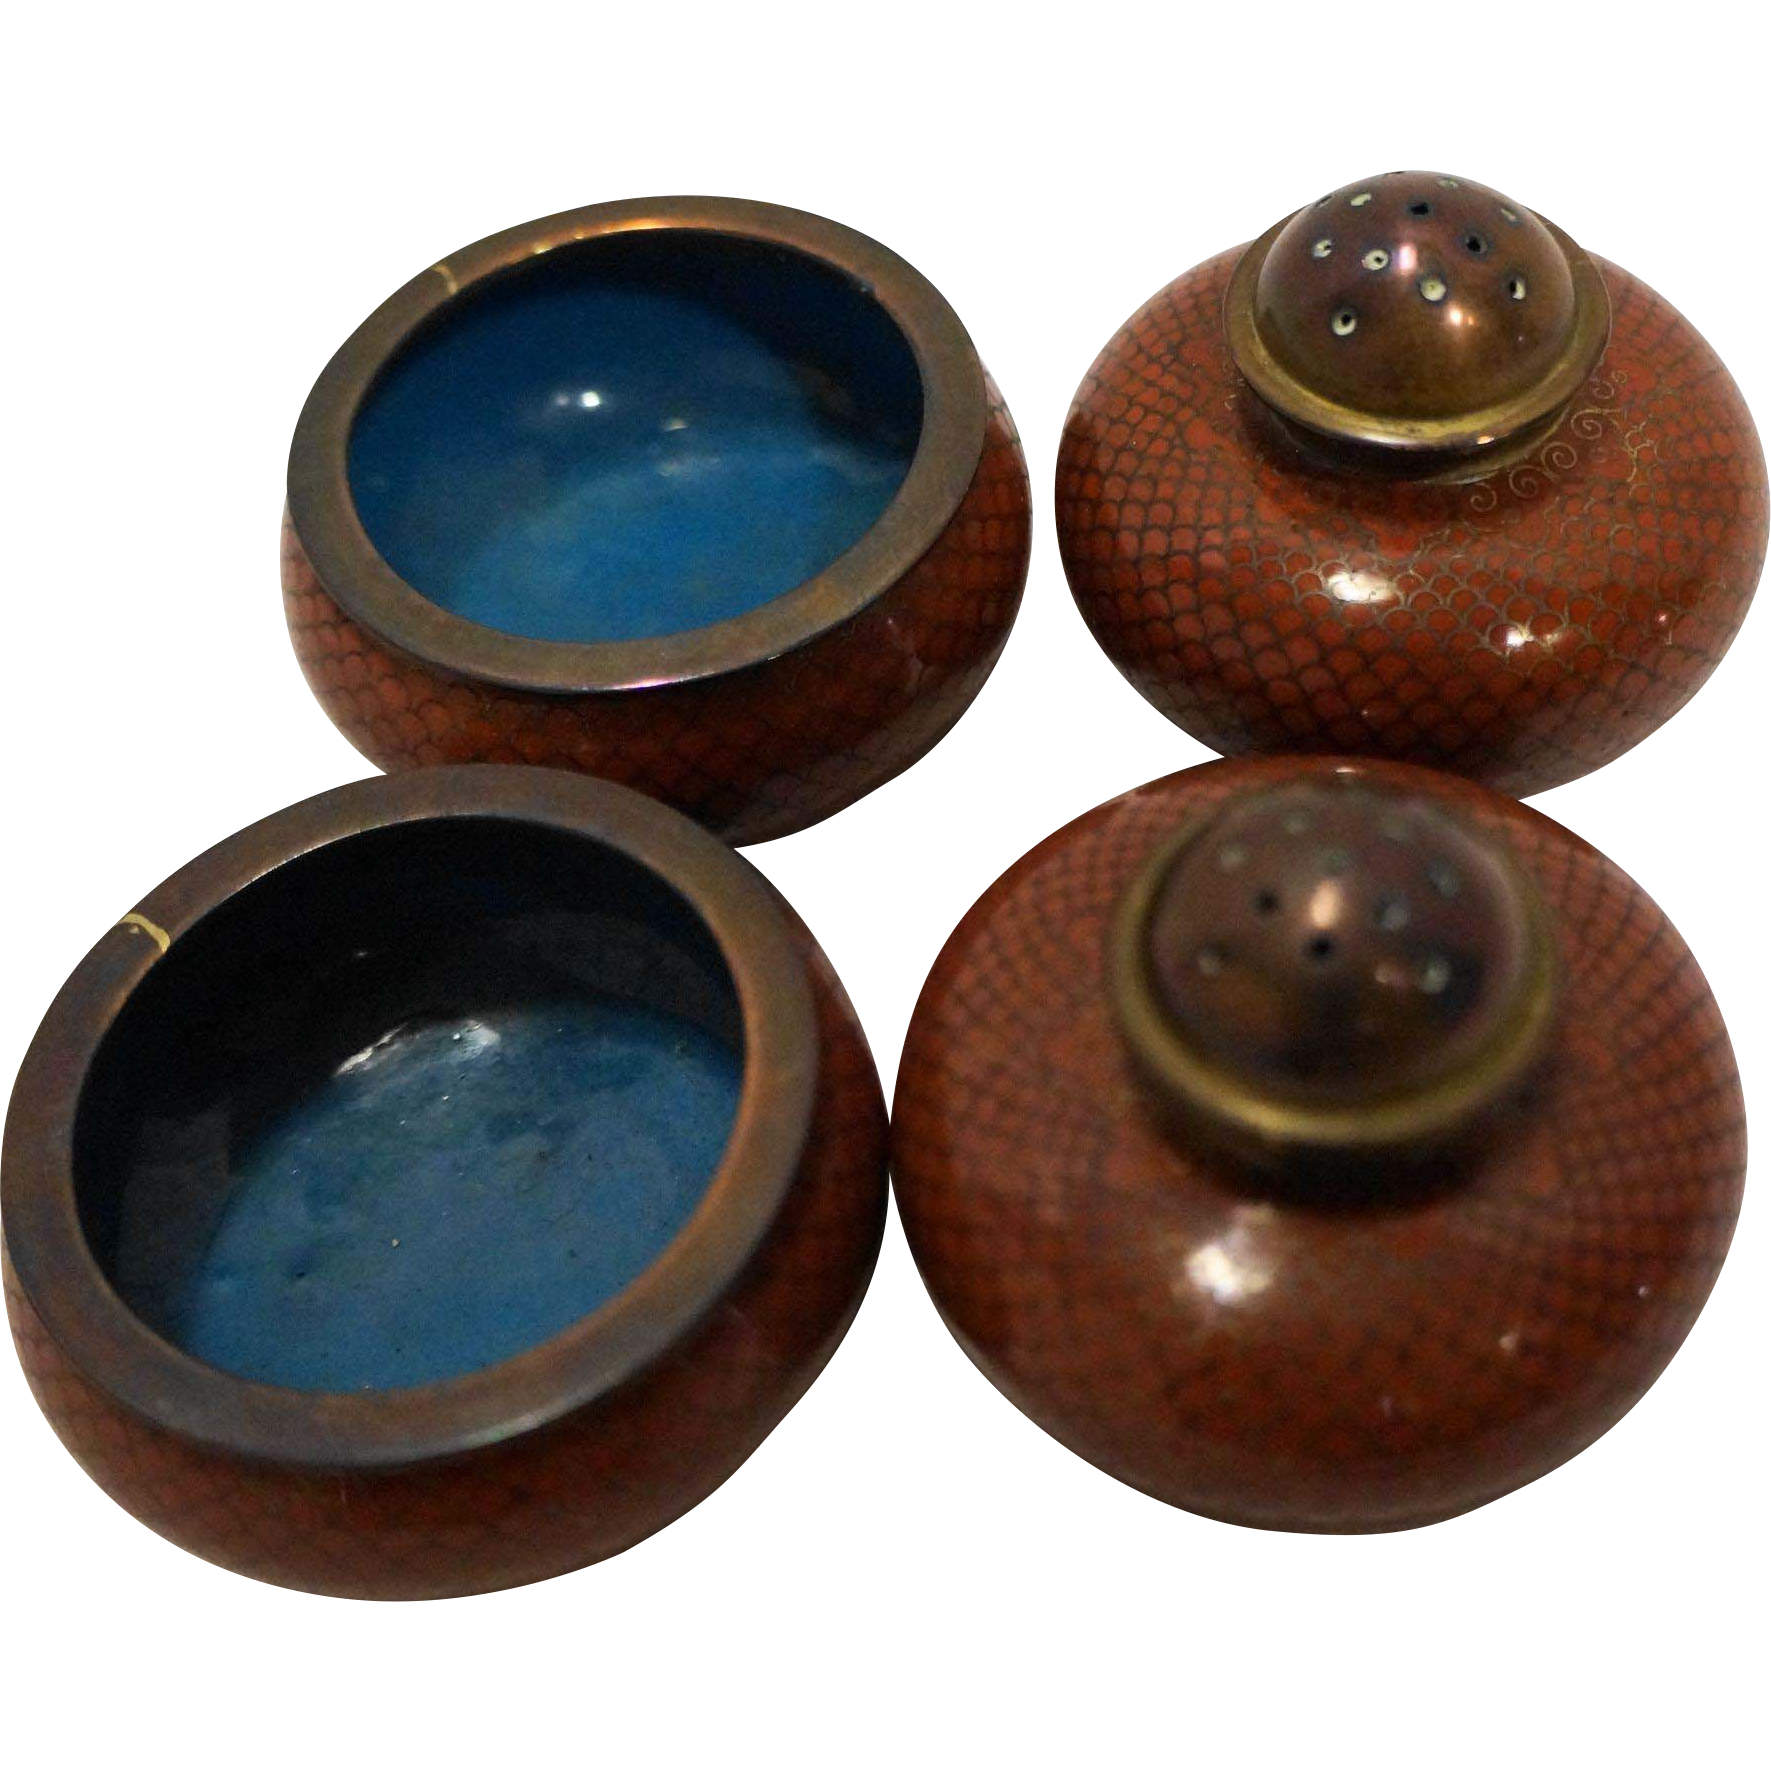 Cloisonne Enamel Salt Cellars Shakers Set Pair Copper Rust Turquoise 1920s Vintage Chinese